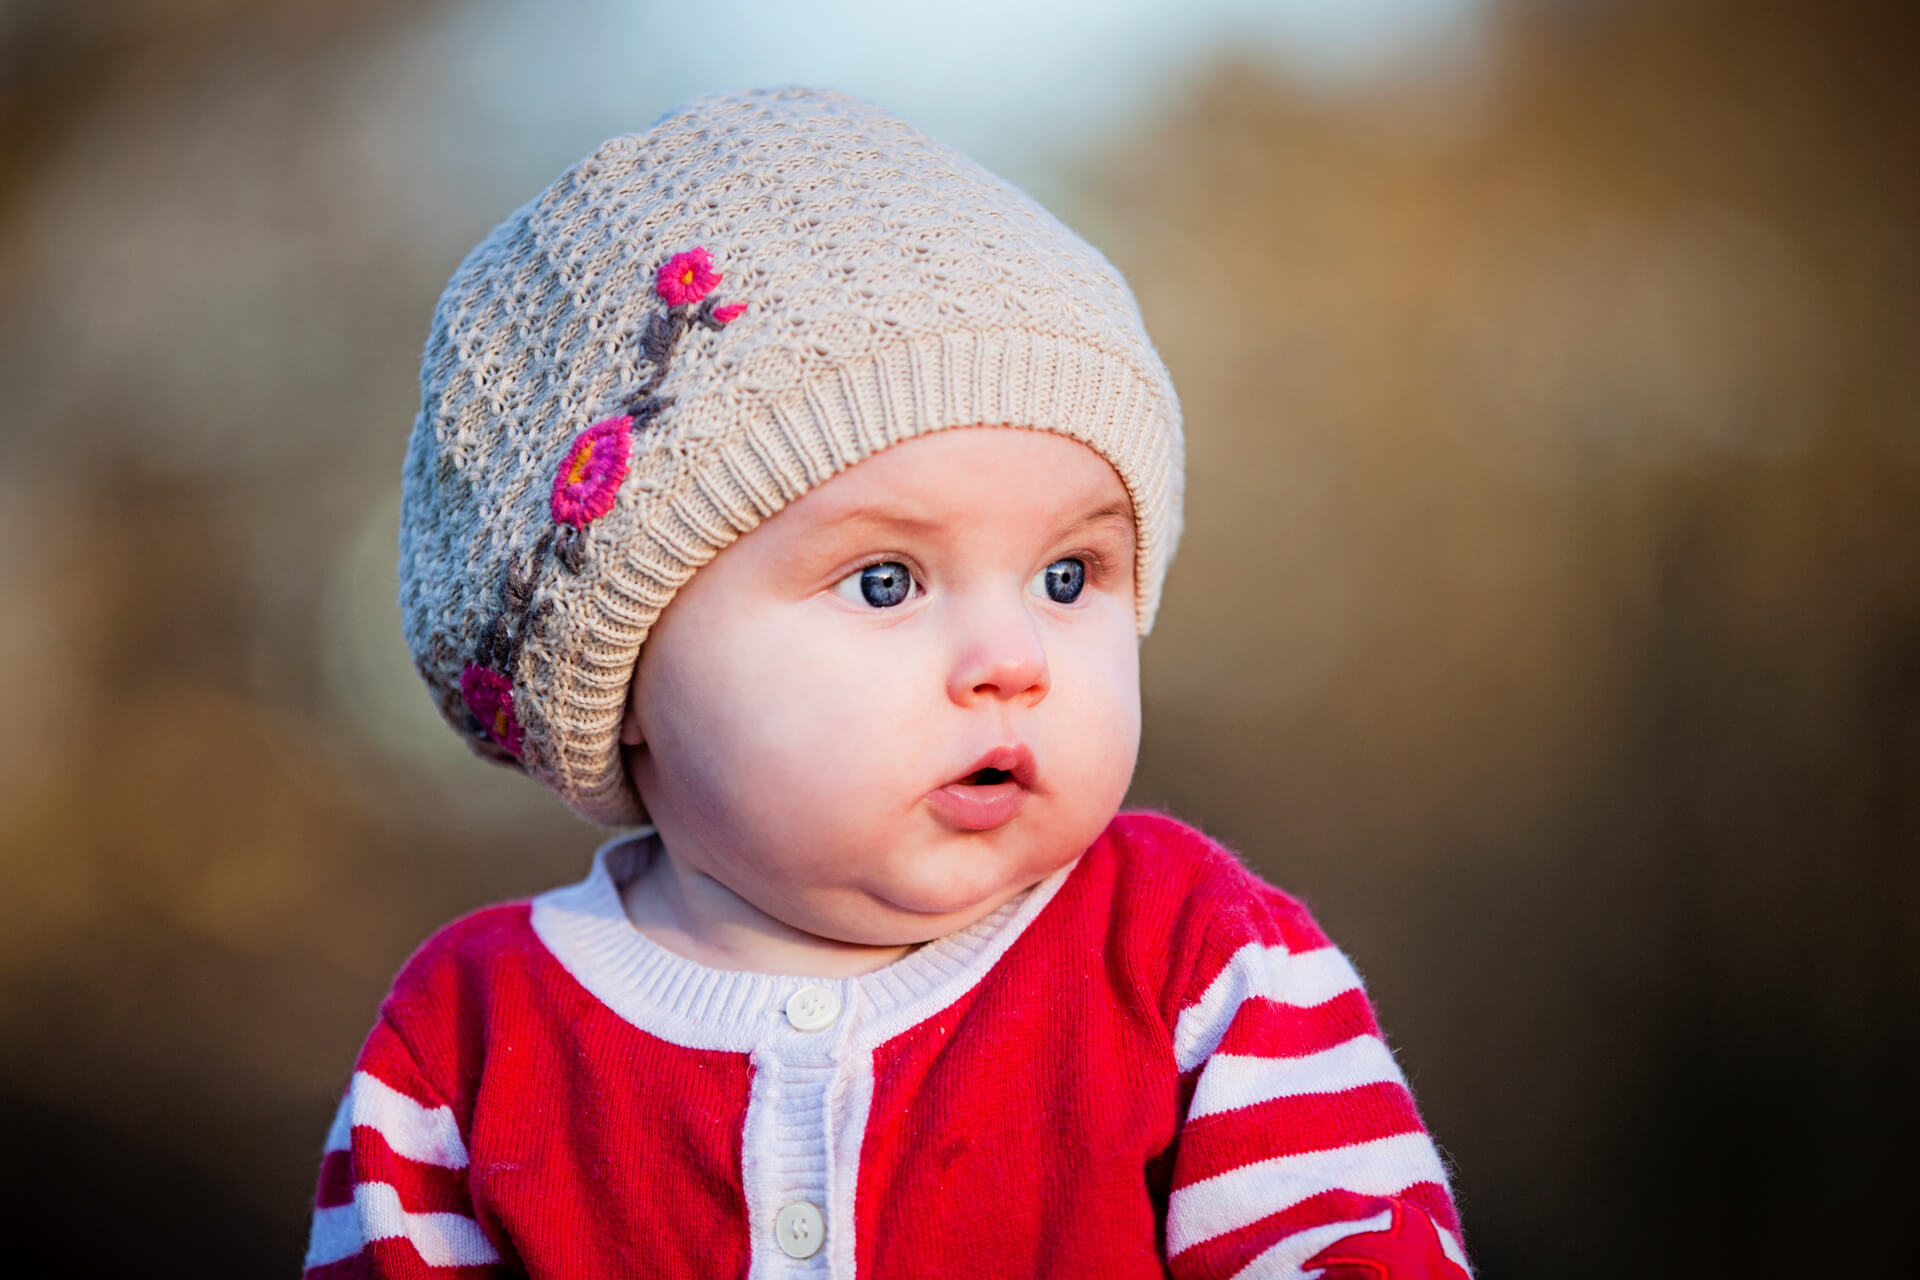 portrait of a baby in winter clothes and wooly hat